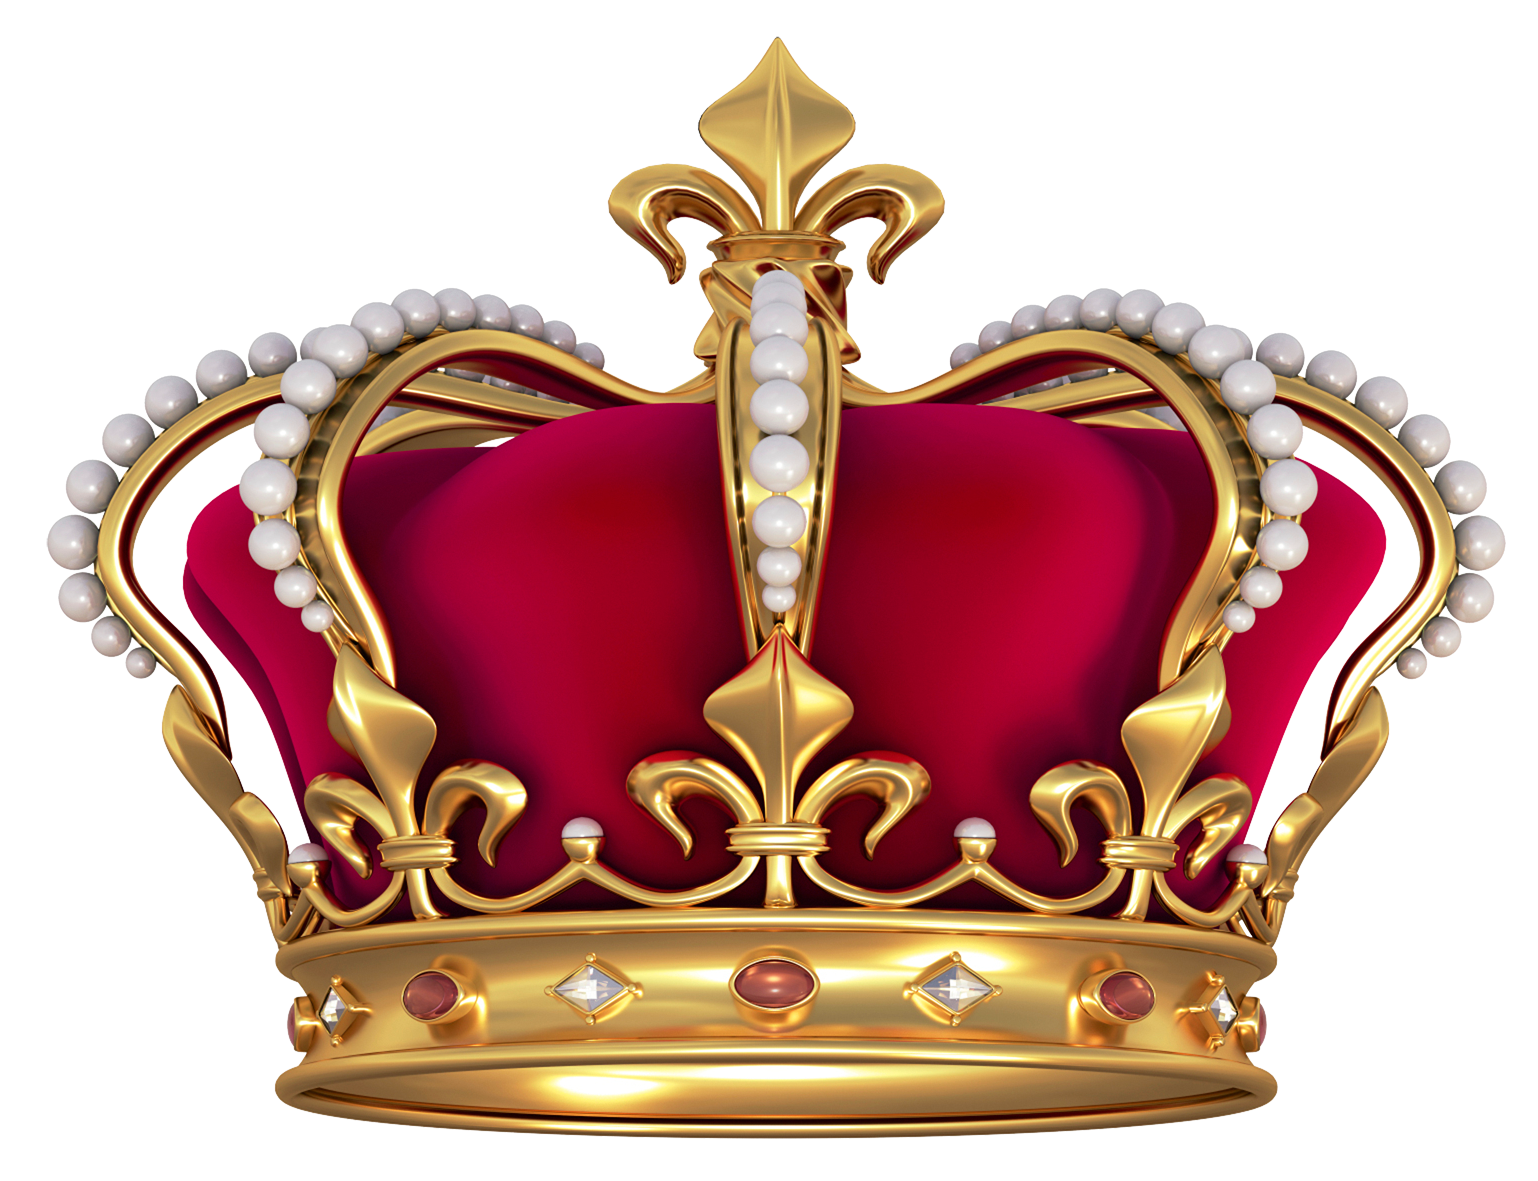 Fancy crown clipart image library stock Red Gold Crown with Pearls PNG Clipart Picture image library stock